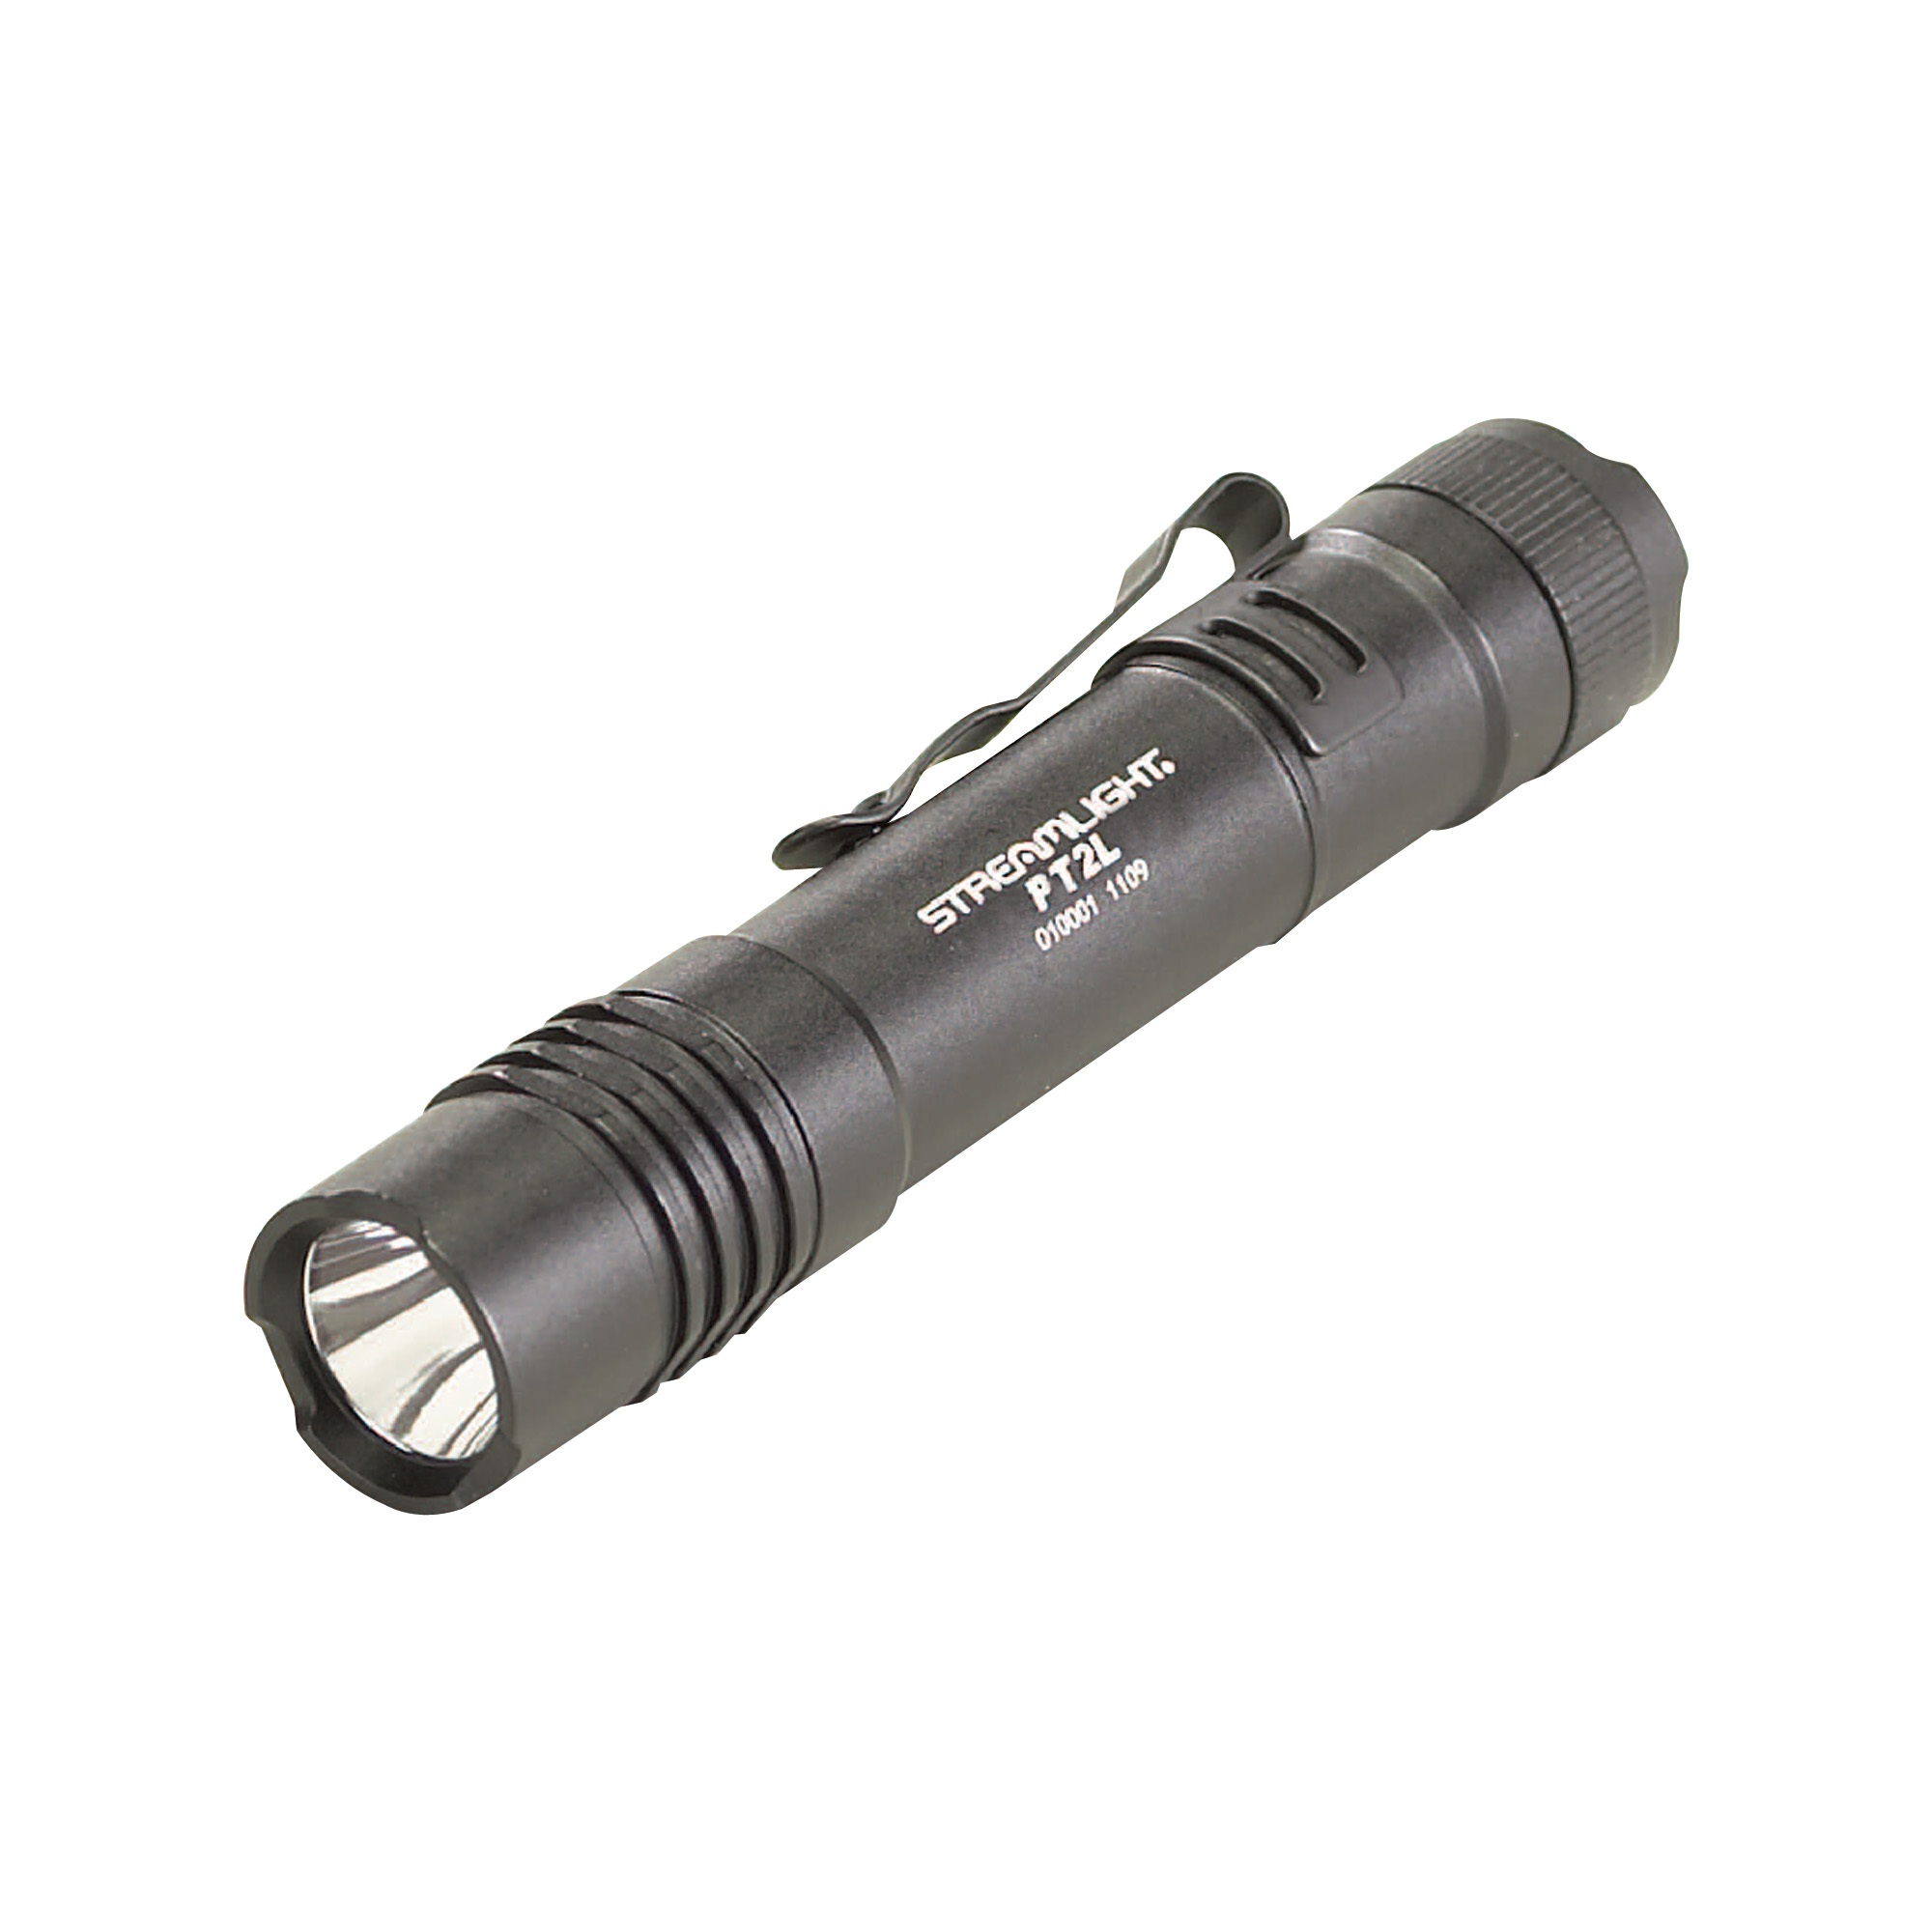 The ProTac 2L conveniently fits in your pocket and delivers a lot of bright light - now producing 350 lumens!